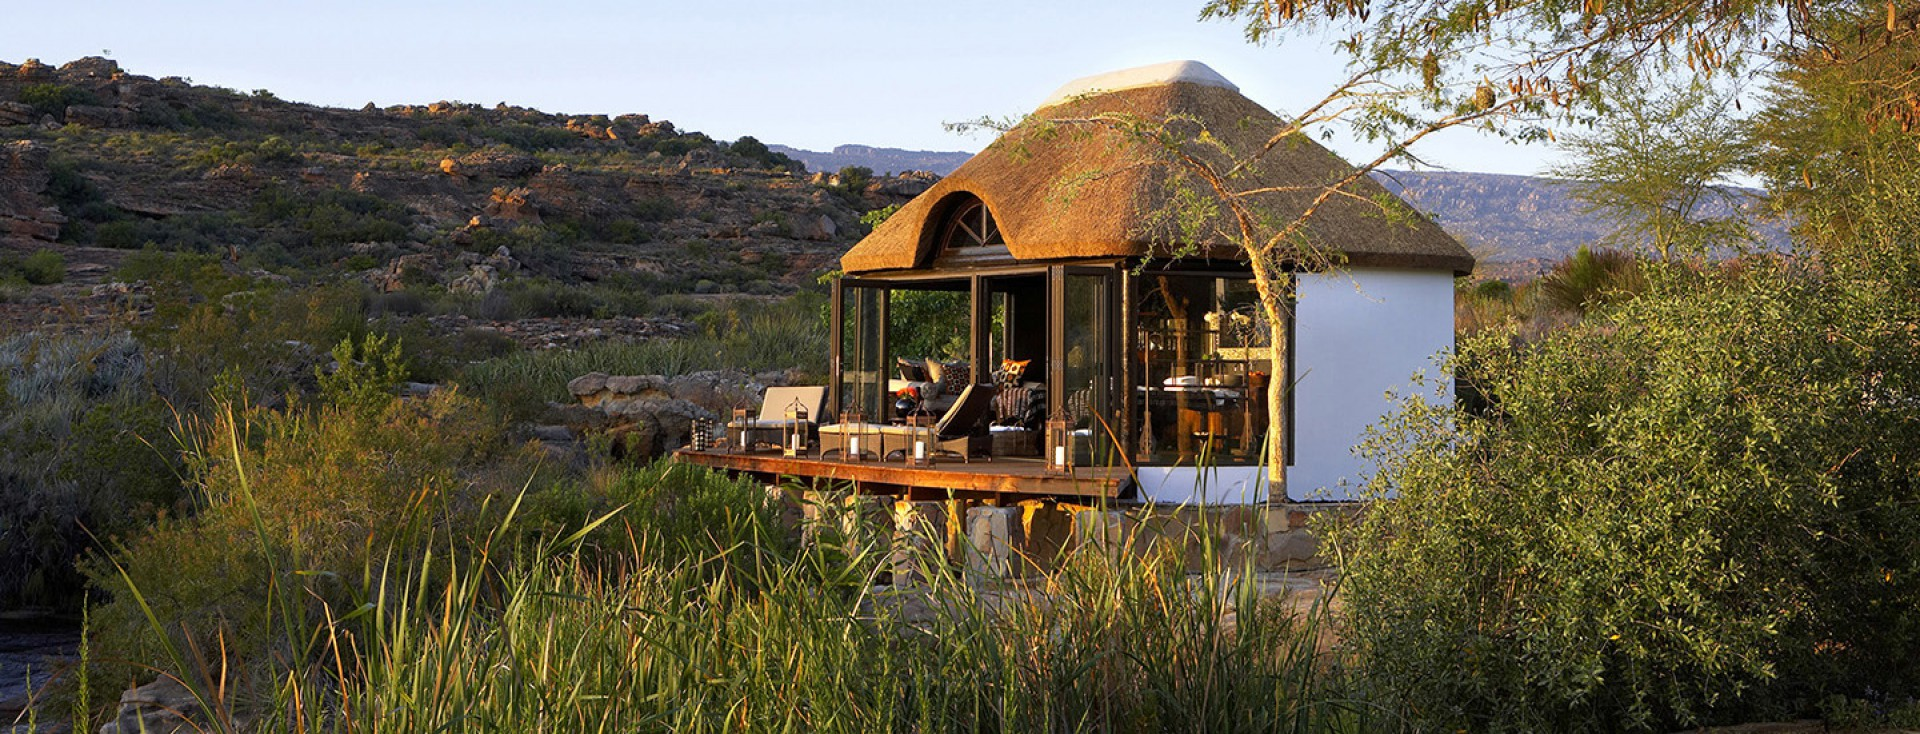 Bushman's Kloof Wilderness Reserve & Wellness Retreat